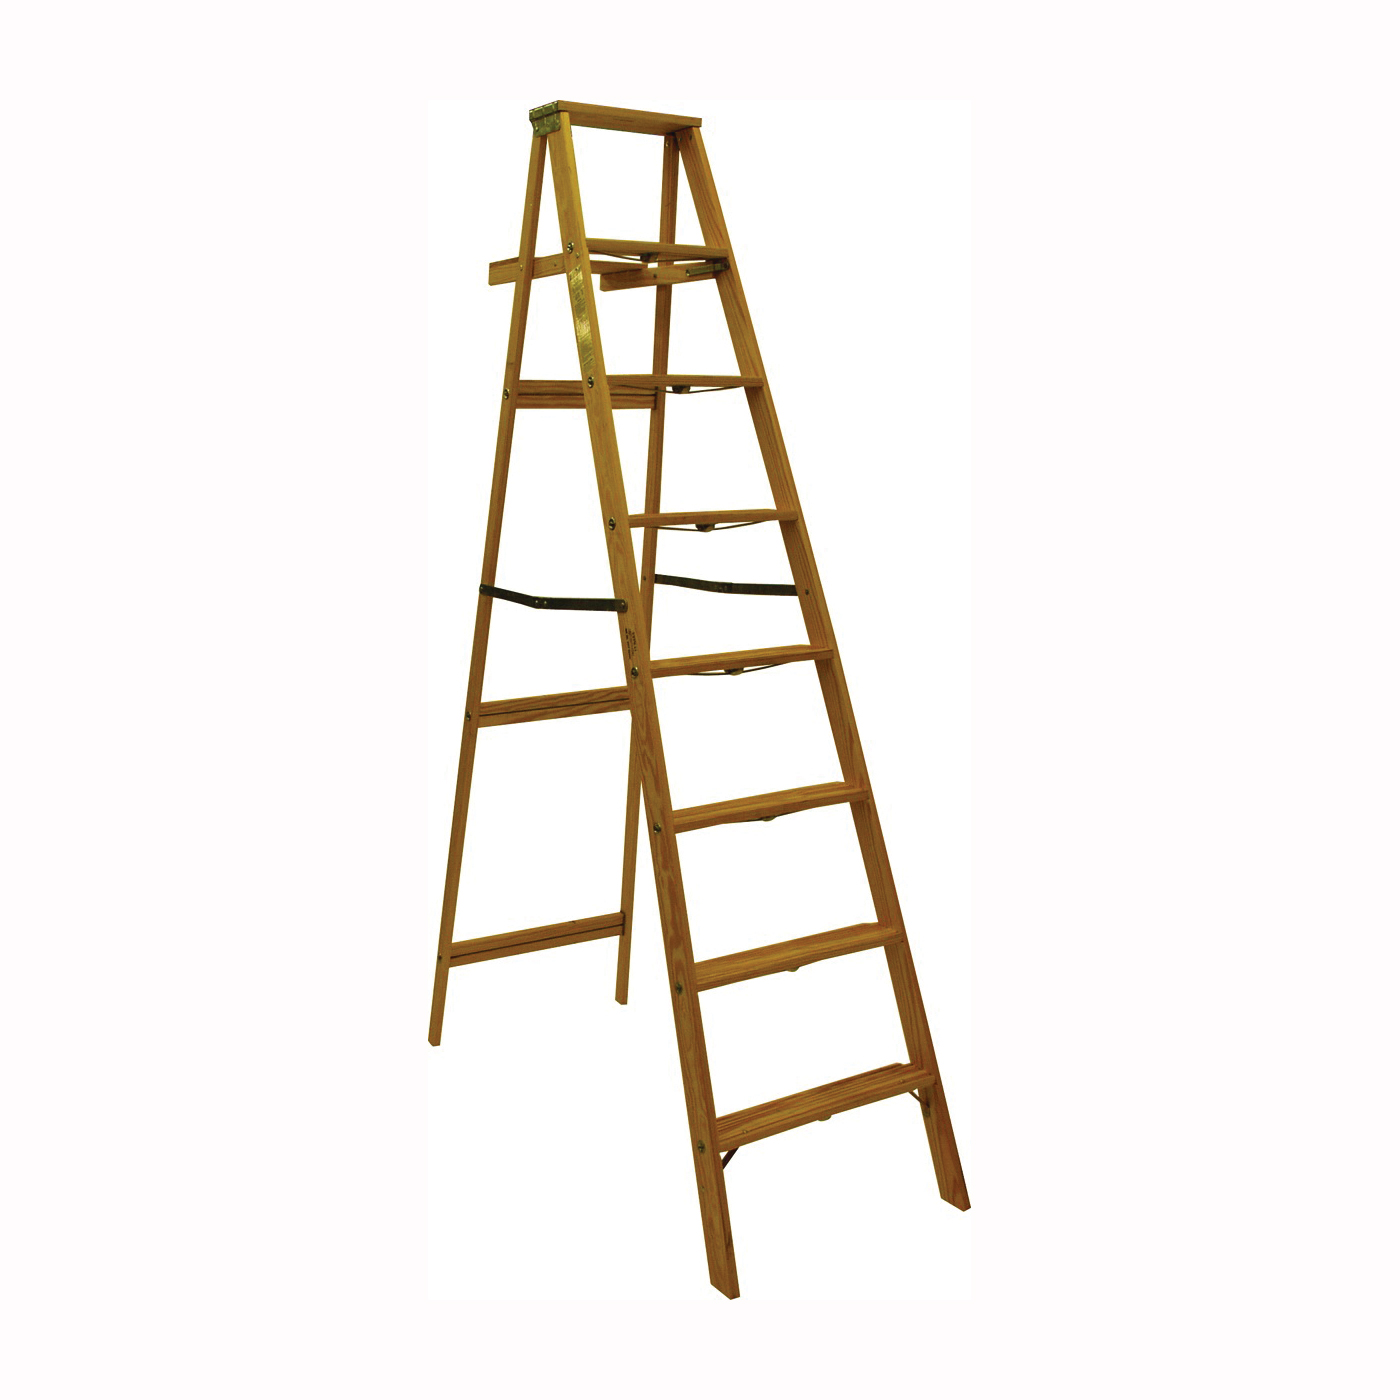 Picture of MICHIGAN LADDER 1200-08 Step Ladder, 225 lb, Type II Duty Rating, Wood, Pine